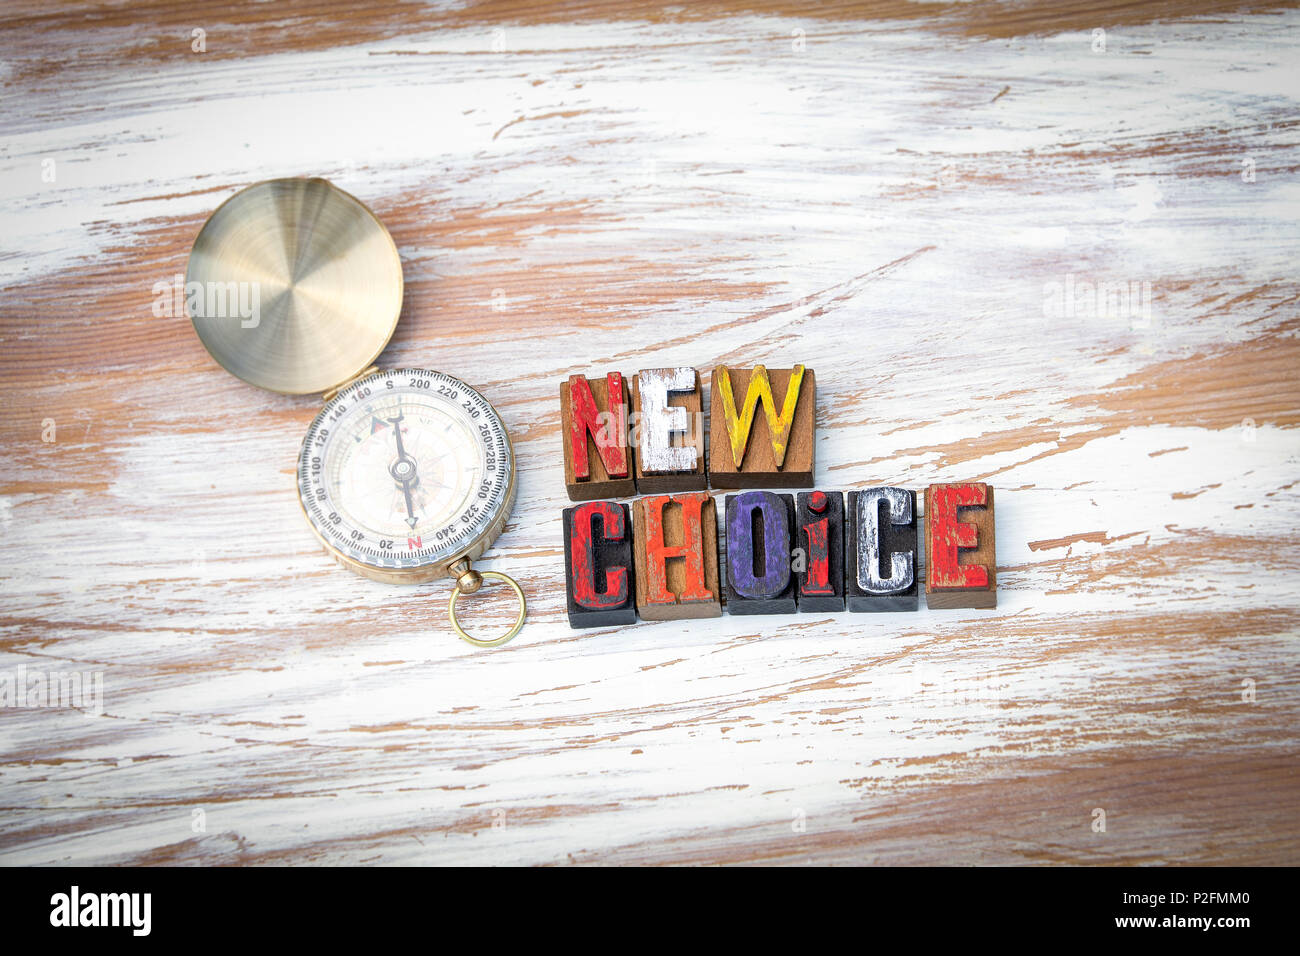 New choice. Wooden letters on the office desk - Stock Image